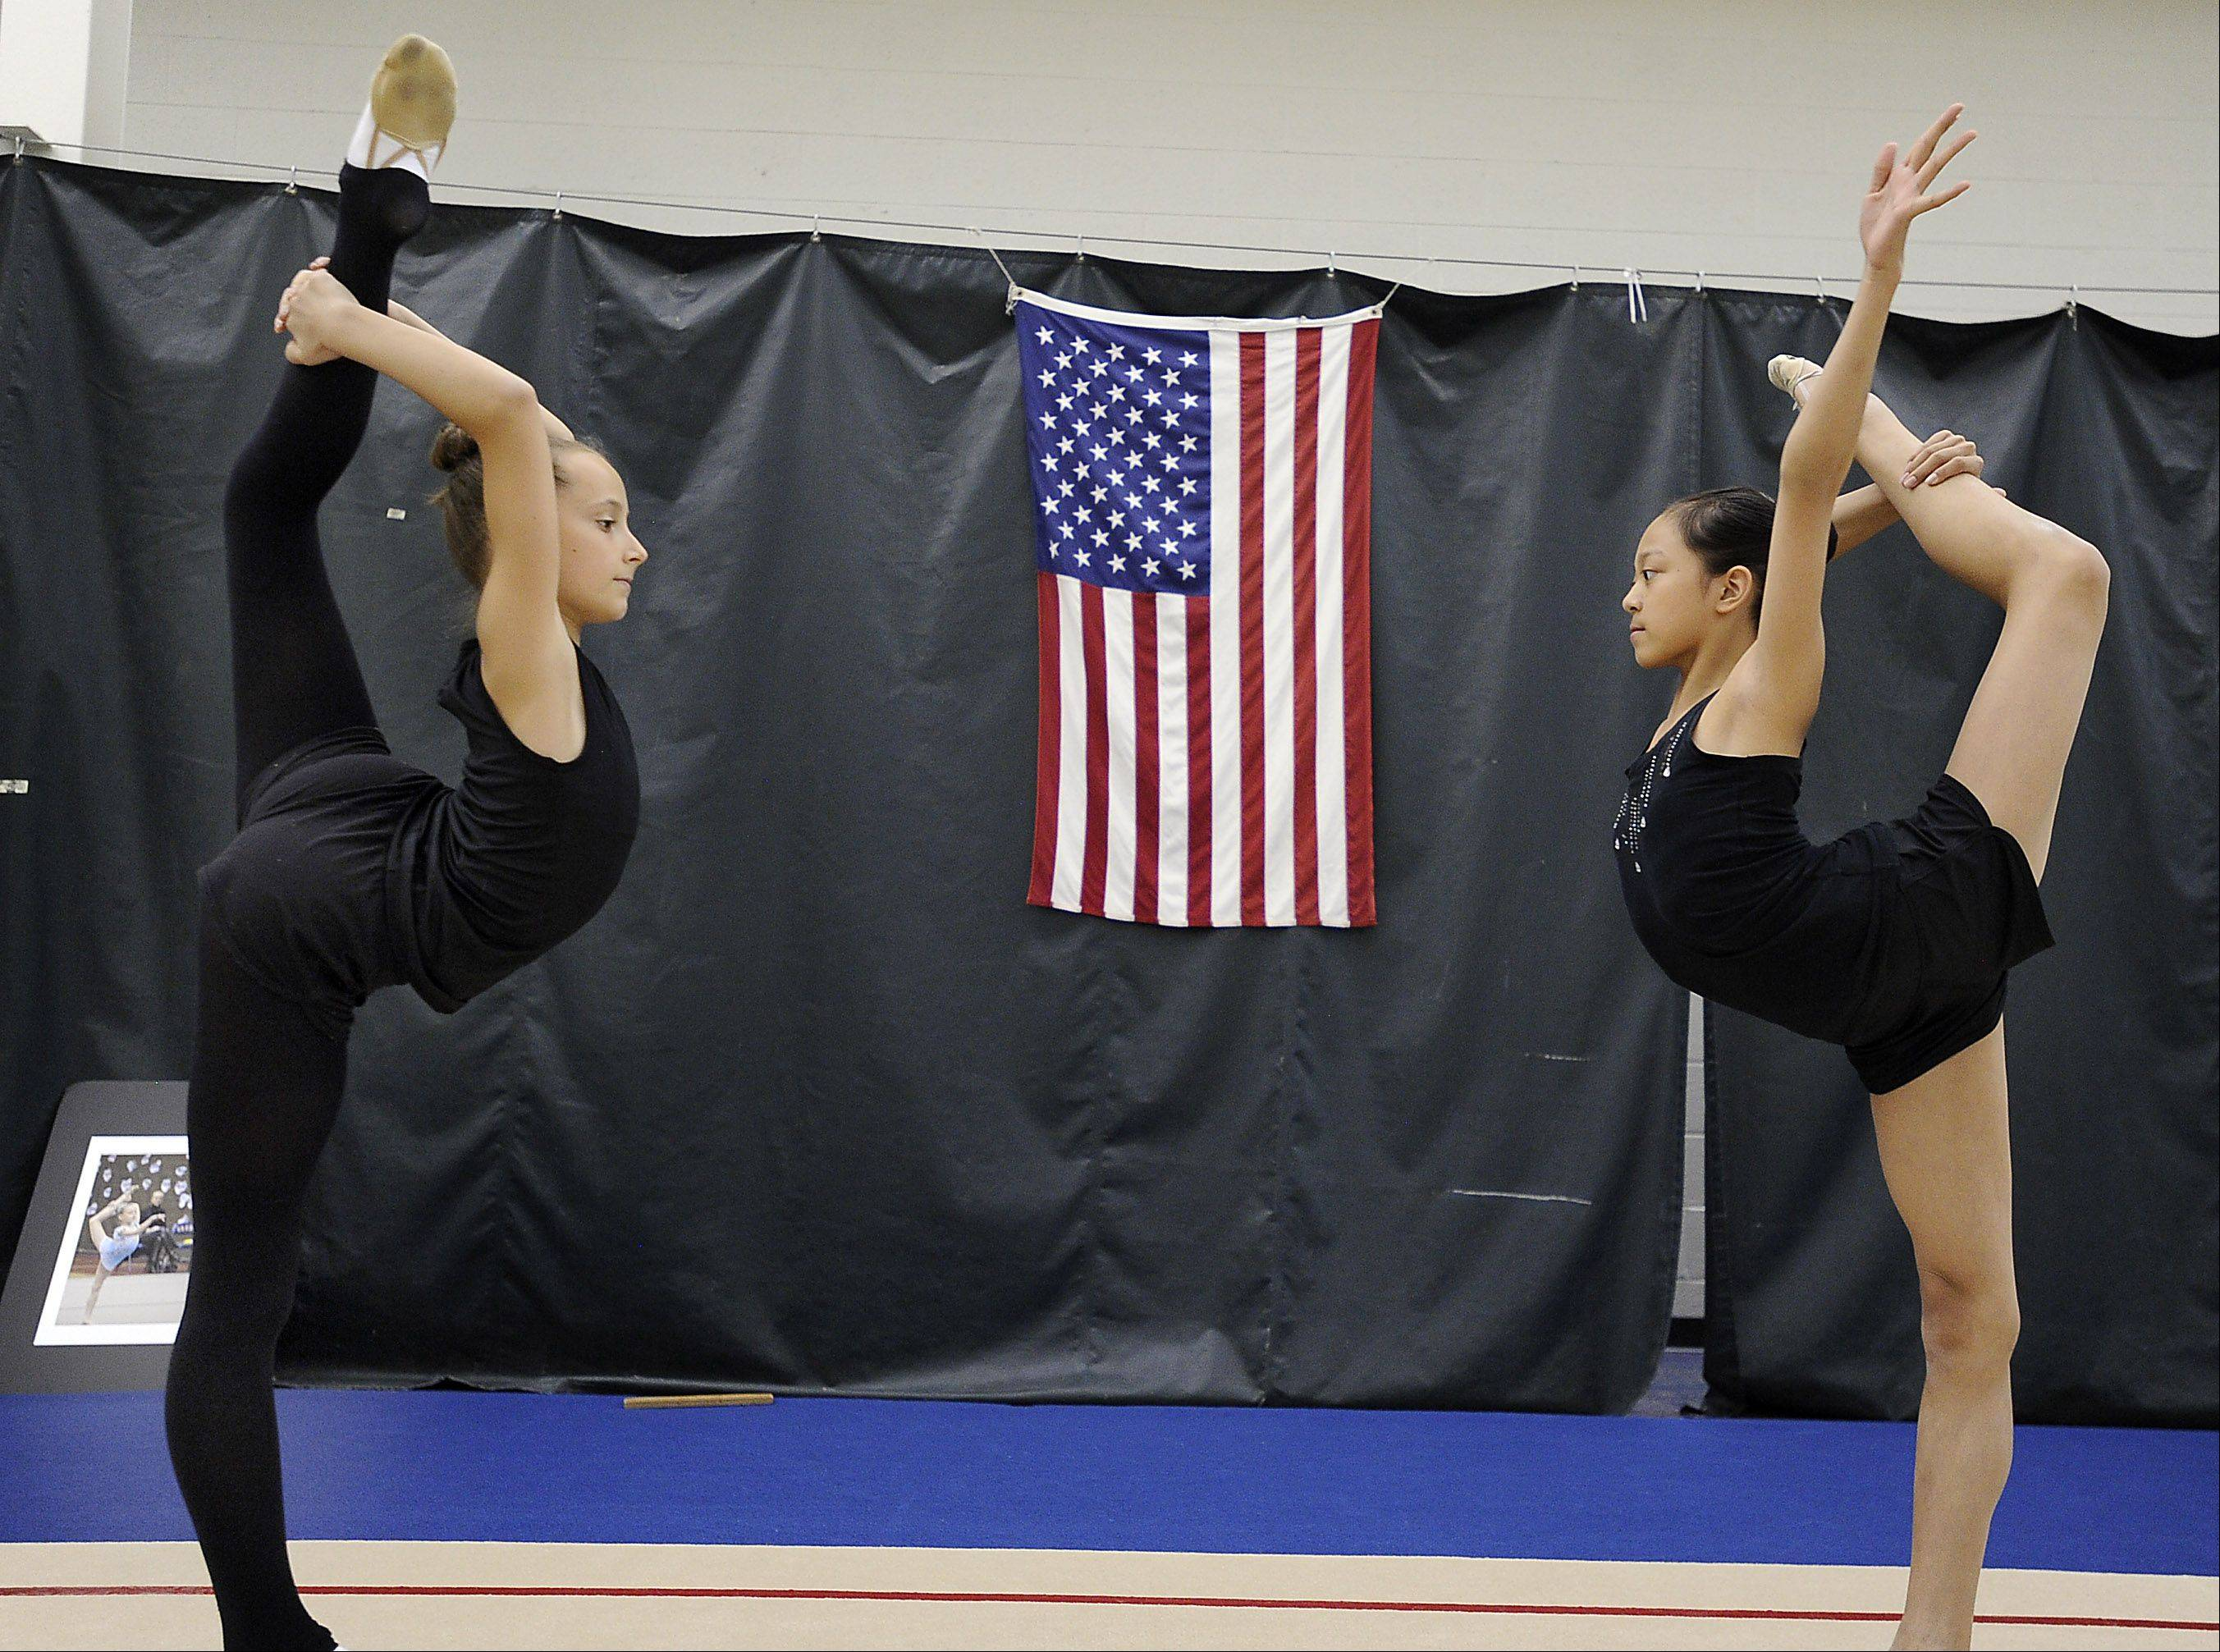 Camilla Feeley, 13, left, of Lincolnshire and Laura Zeng, 13, of Libertyville warm up for a recent training session at the North Shore Rhythmic Gymnastic Center in Deerfield. Both are members of the junior national team and Laura is the reigning national junior champion.